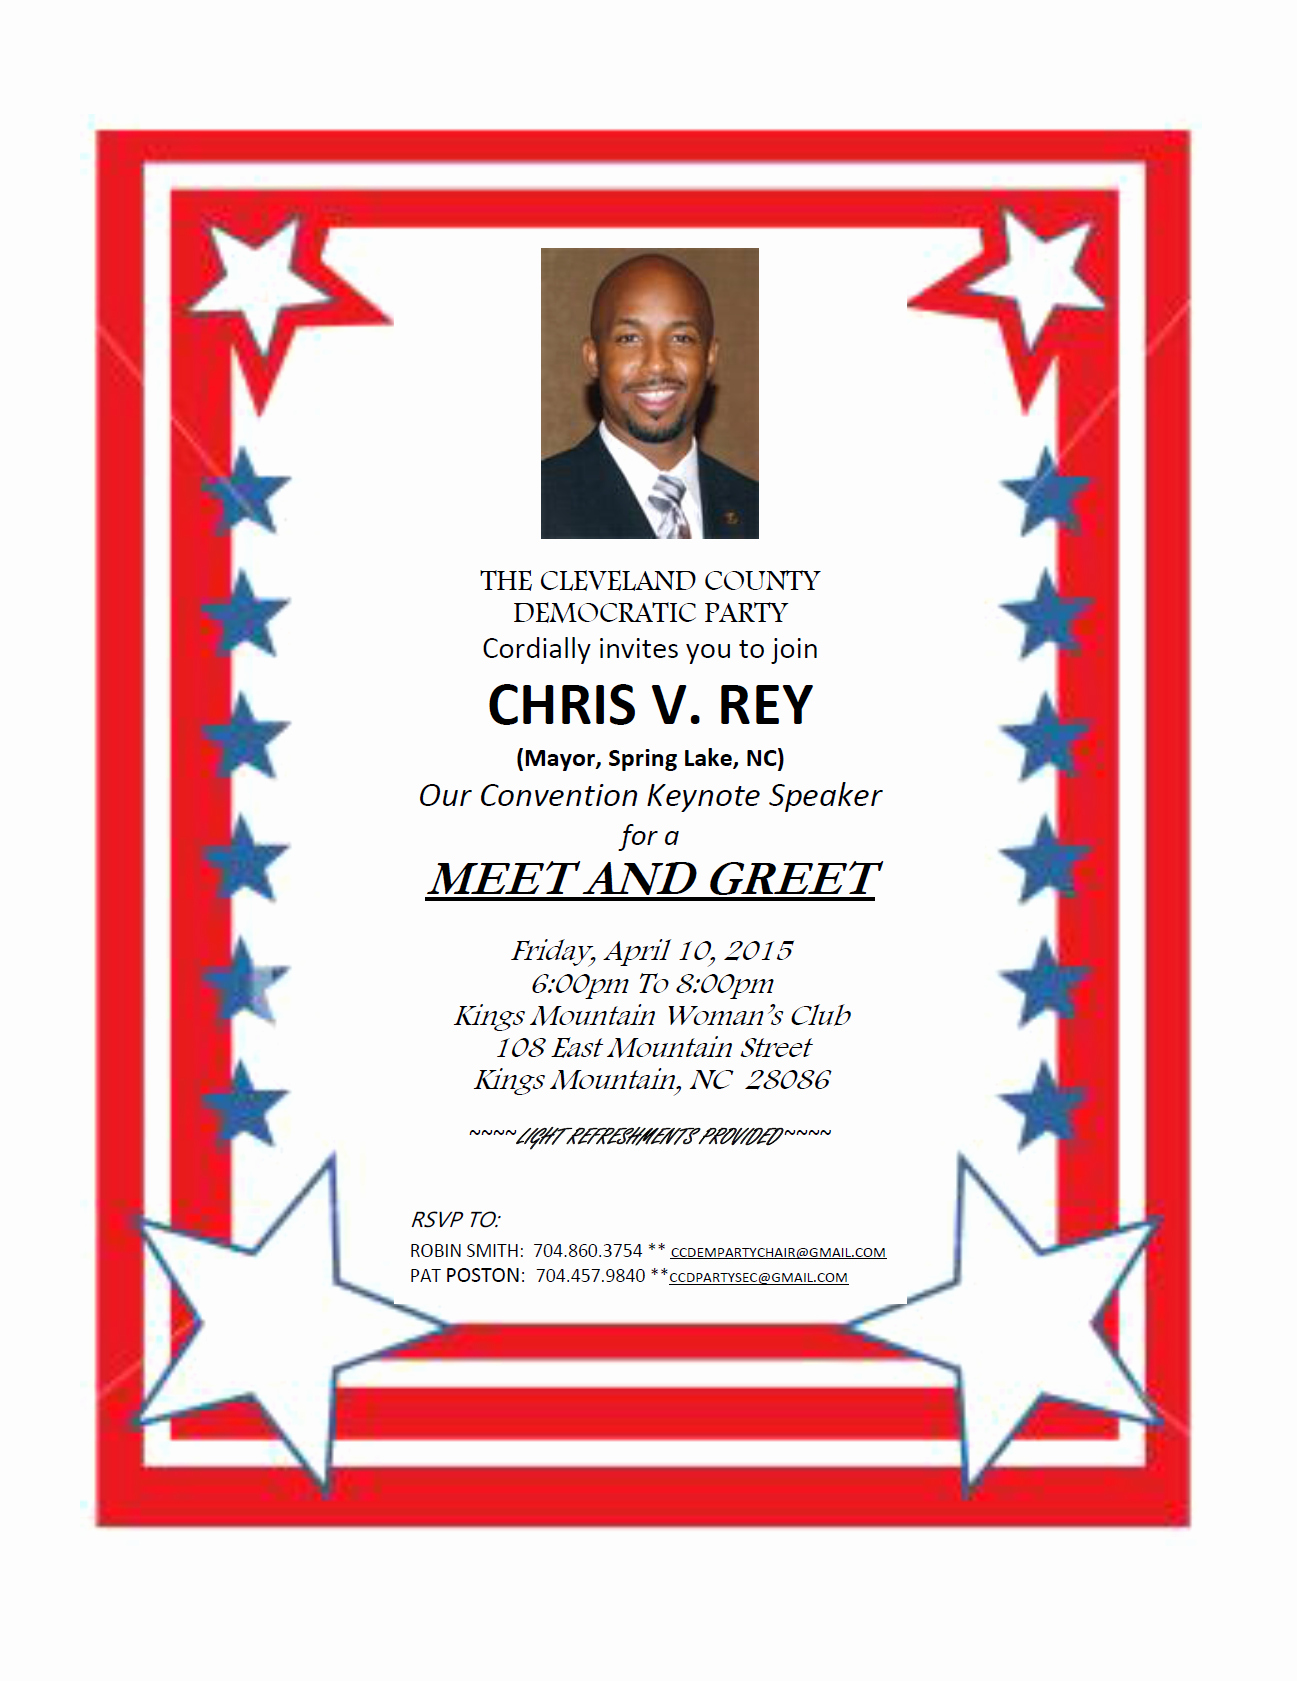 Meet and Greet Invitation Wording Inspirational Invitation Rey Meet and Greet Cleveland Dems